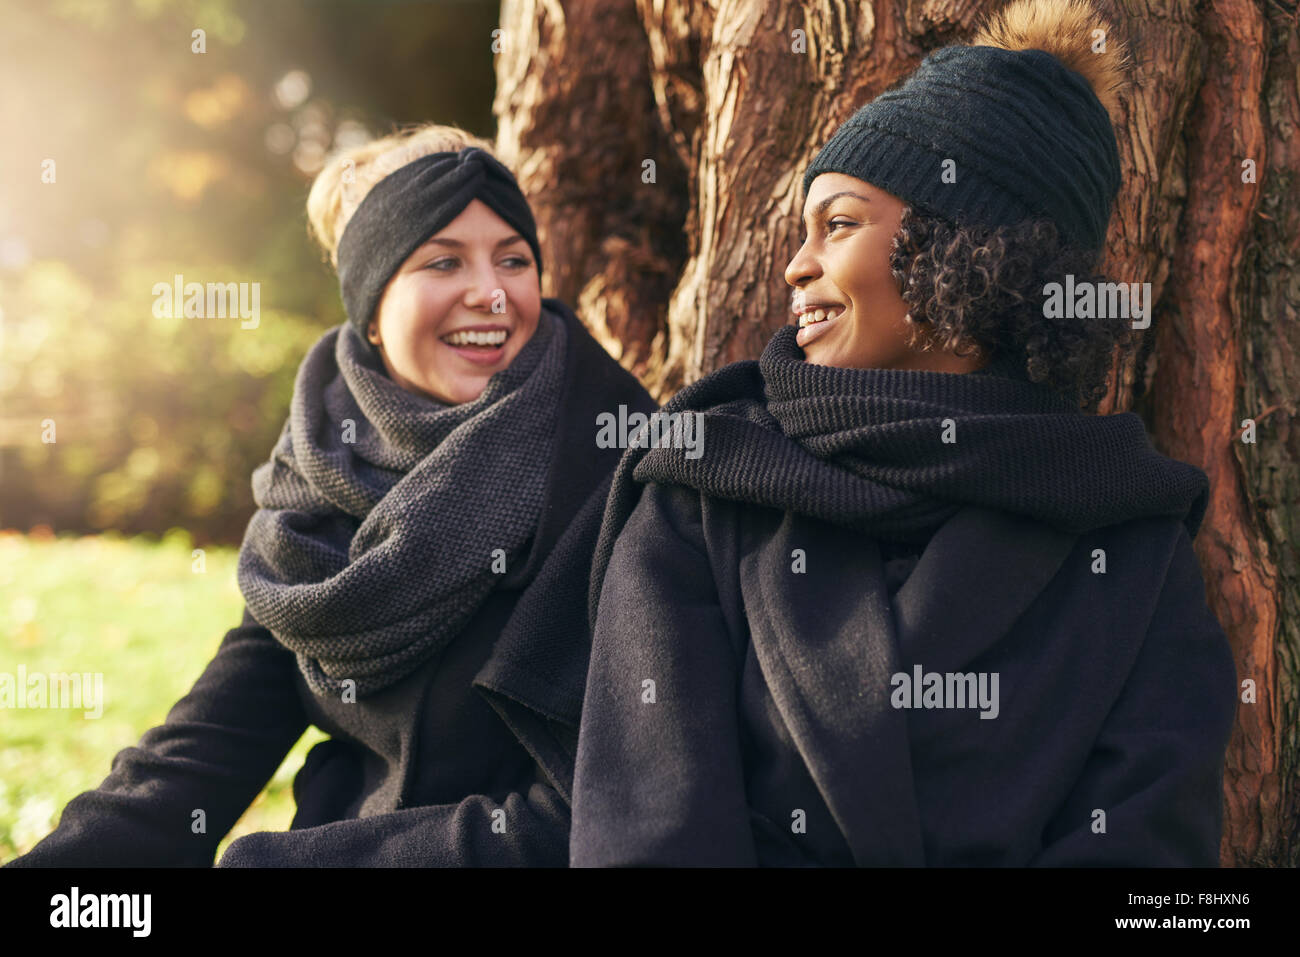 Close-up of two smiling young women leaning on tree trunk in autumnal park and looking at each other - Stock Image